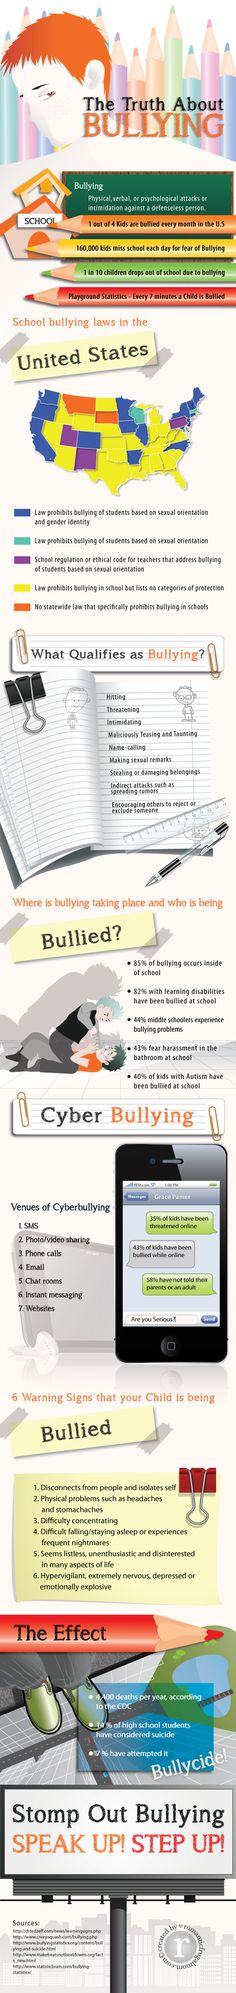 The Truth About Bullying. #infografia #infographic